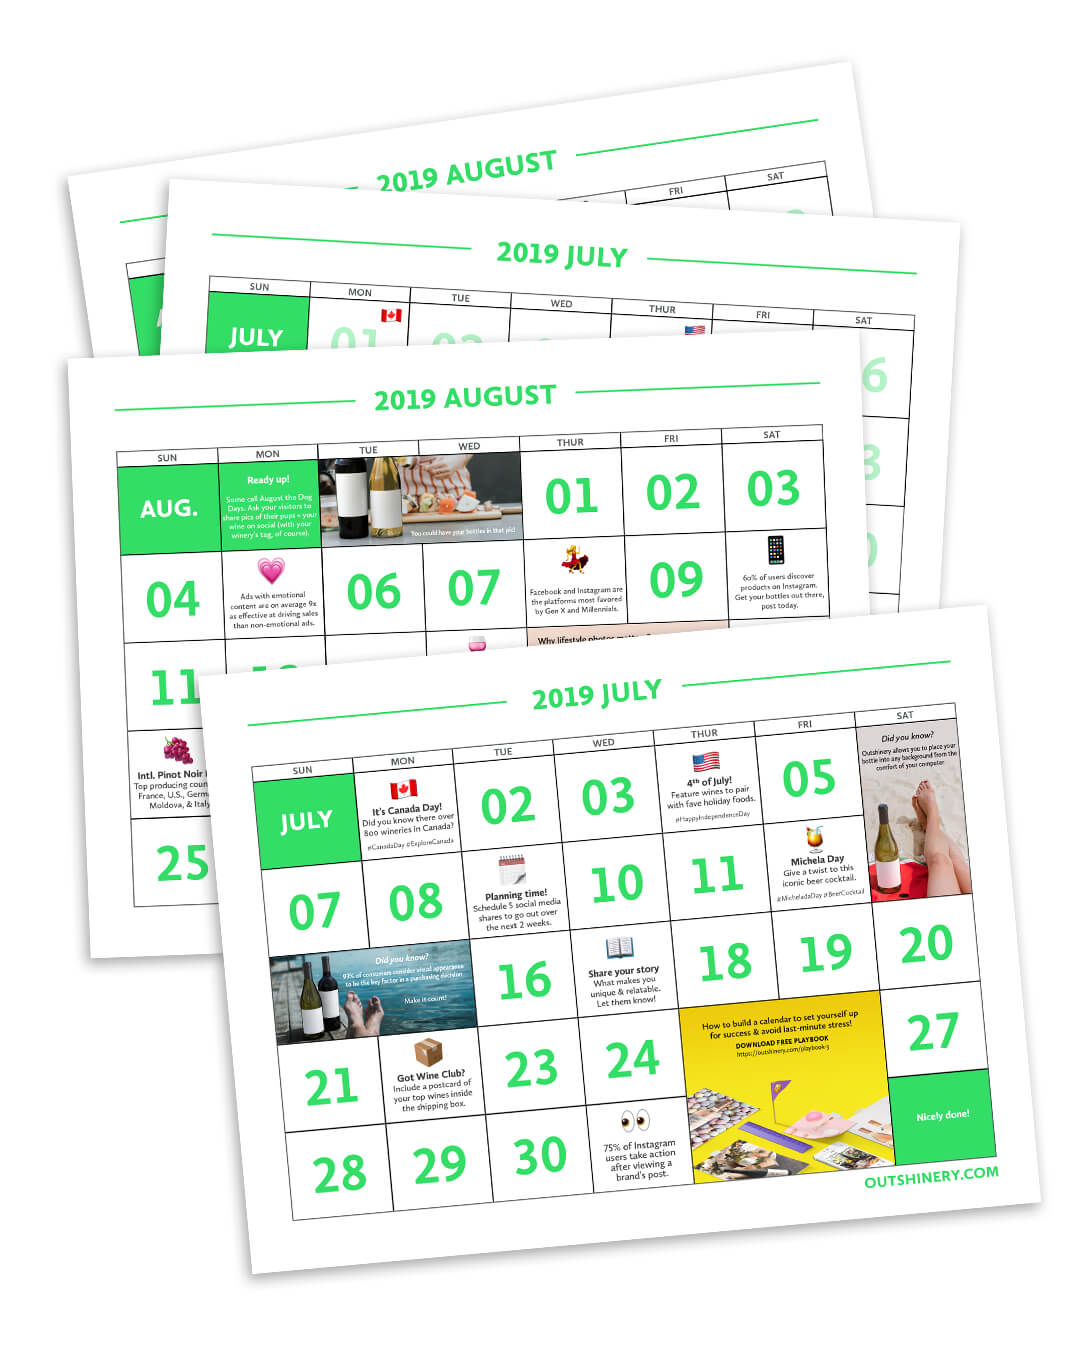 Stay on track this summer - Easy on the eye and actionable. This 2019 printable marketing calendar will help you achieve your most effective summer marketing campaign ever.Find reminders, hashtag suggestions, and turnkey plans to deliver your most effective summer marketing campaign ever.